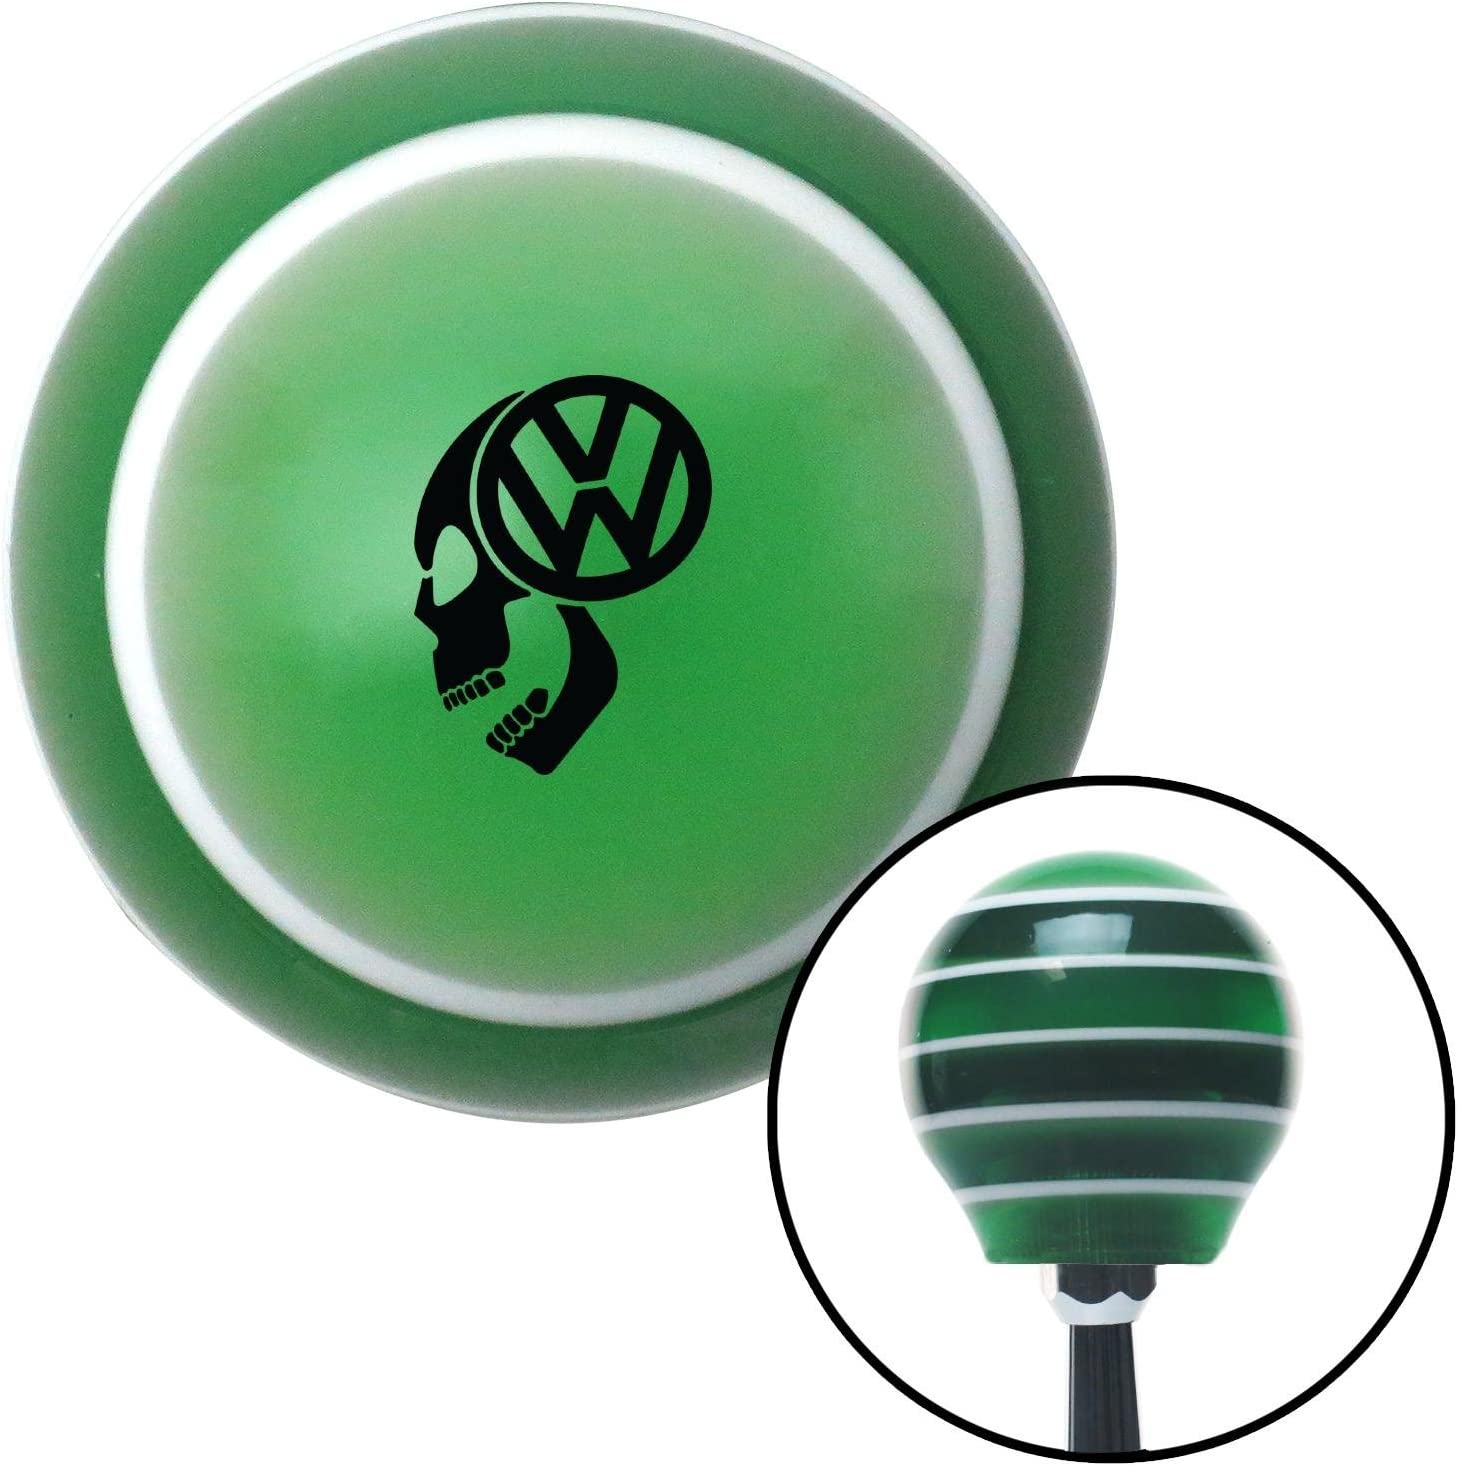 Green Spider American Shifter 76027 Ivory Shift Knob with M16 x 1.5 Insert